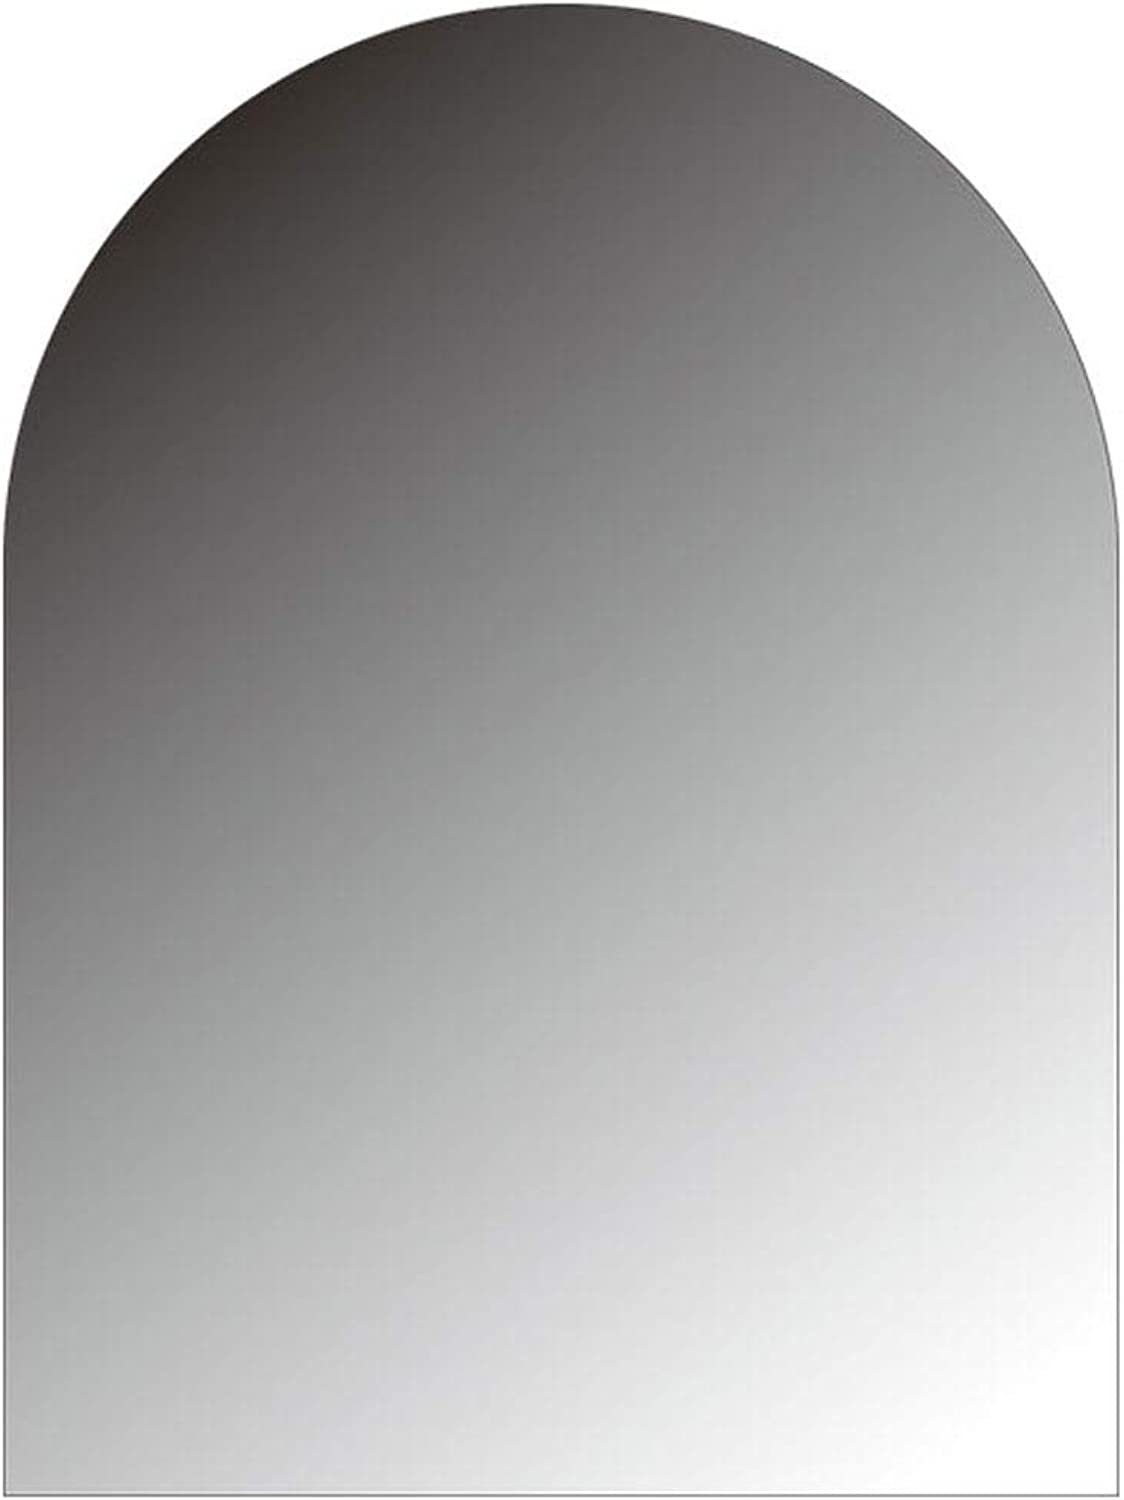 24 x 32 In greenical Unframed Rectangle Bathroom Silvered Mirror (E-B101)